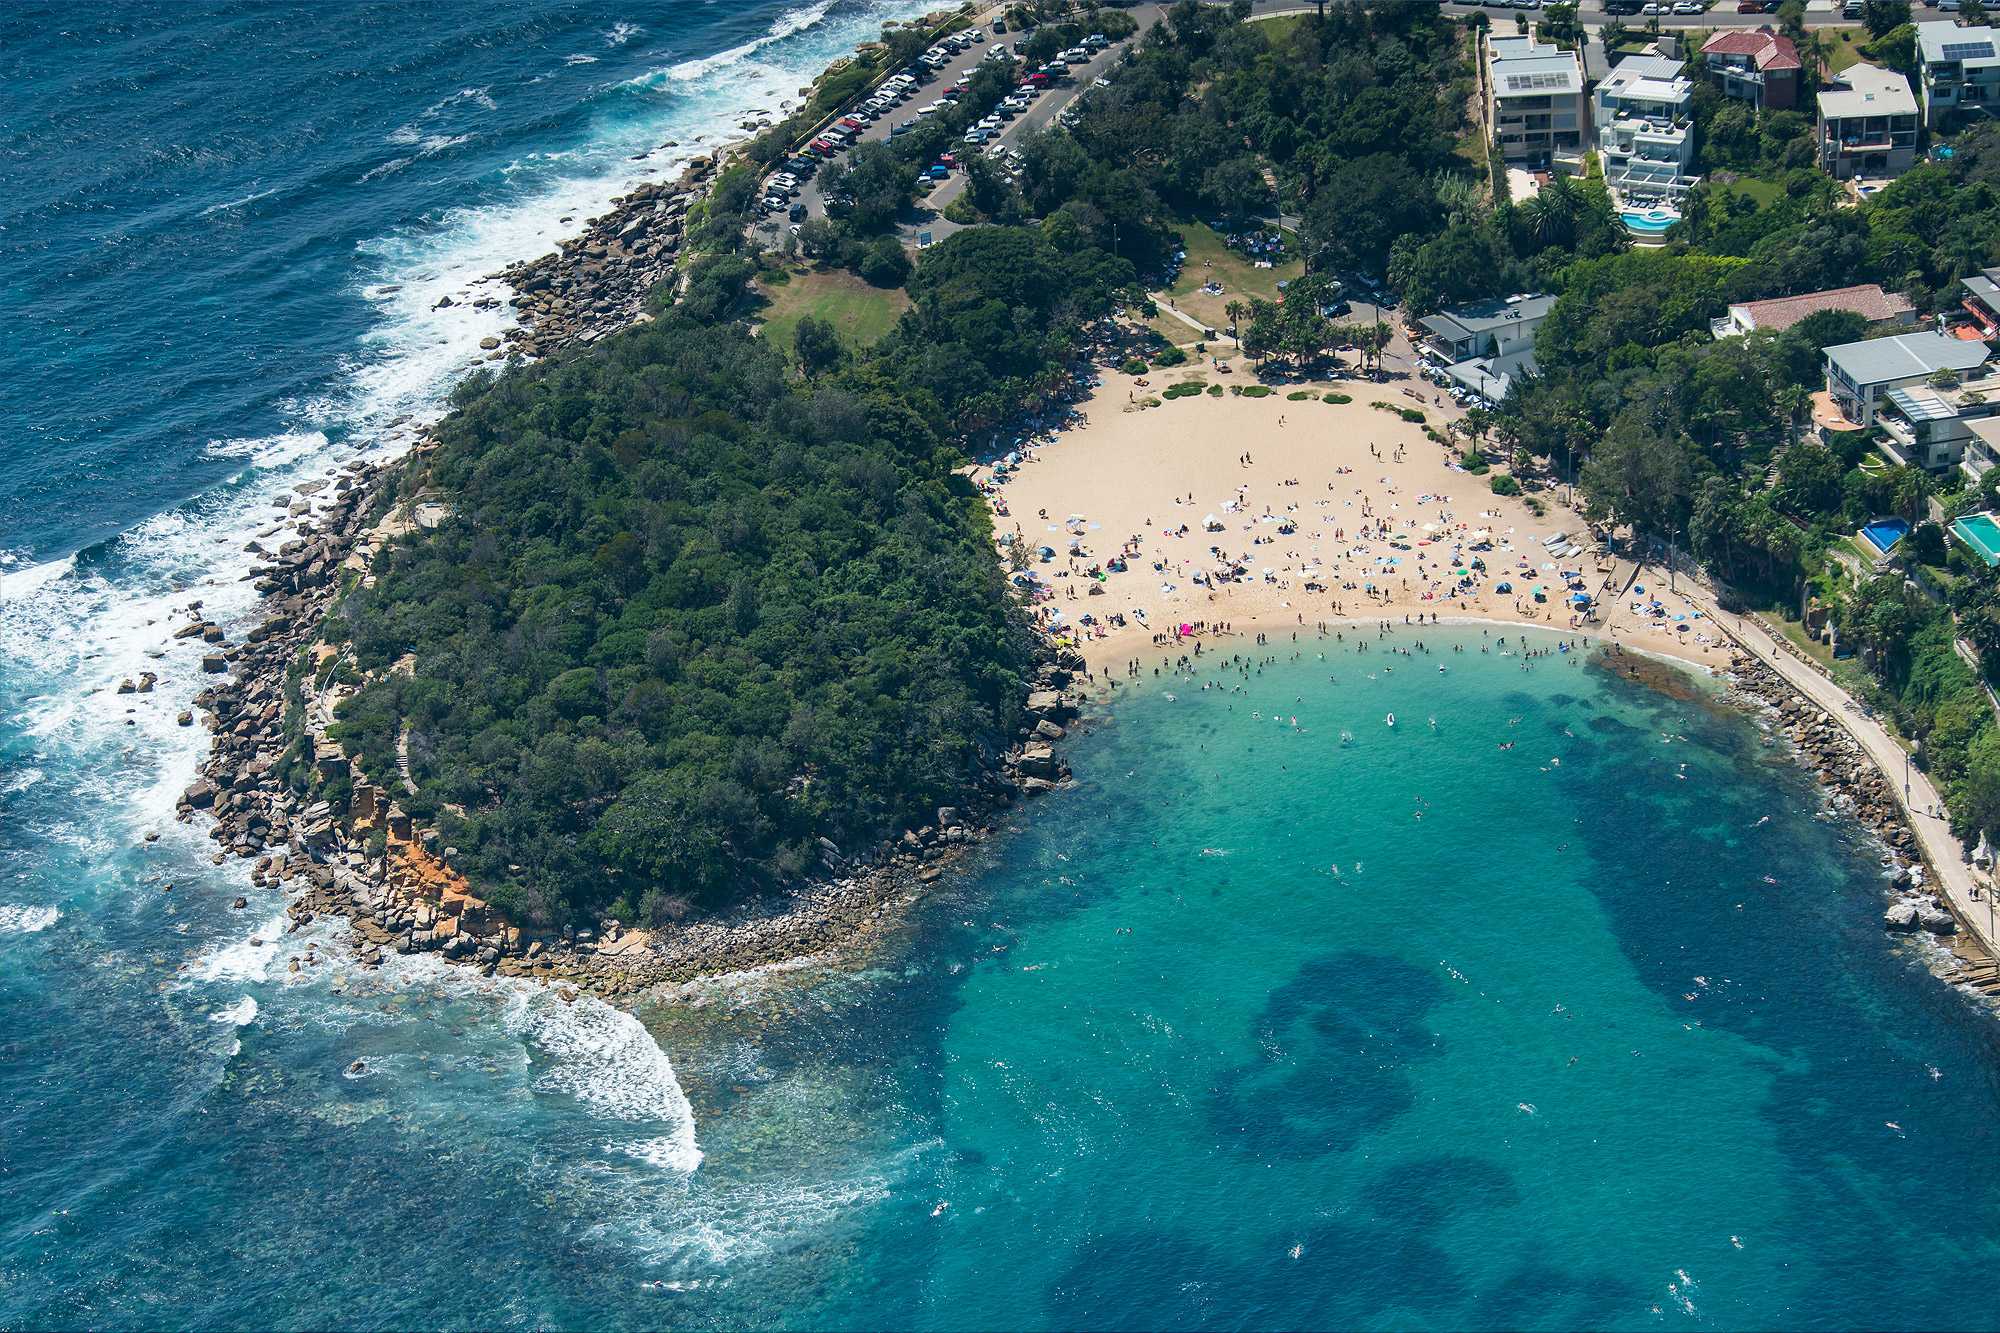 Aerial View of Shelly Beach next to Manly